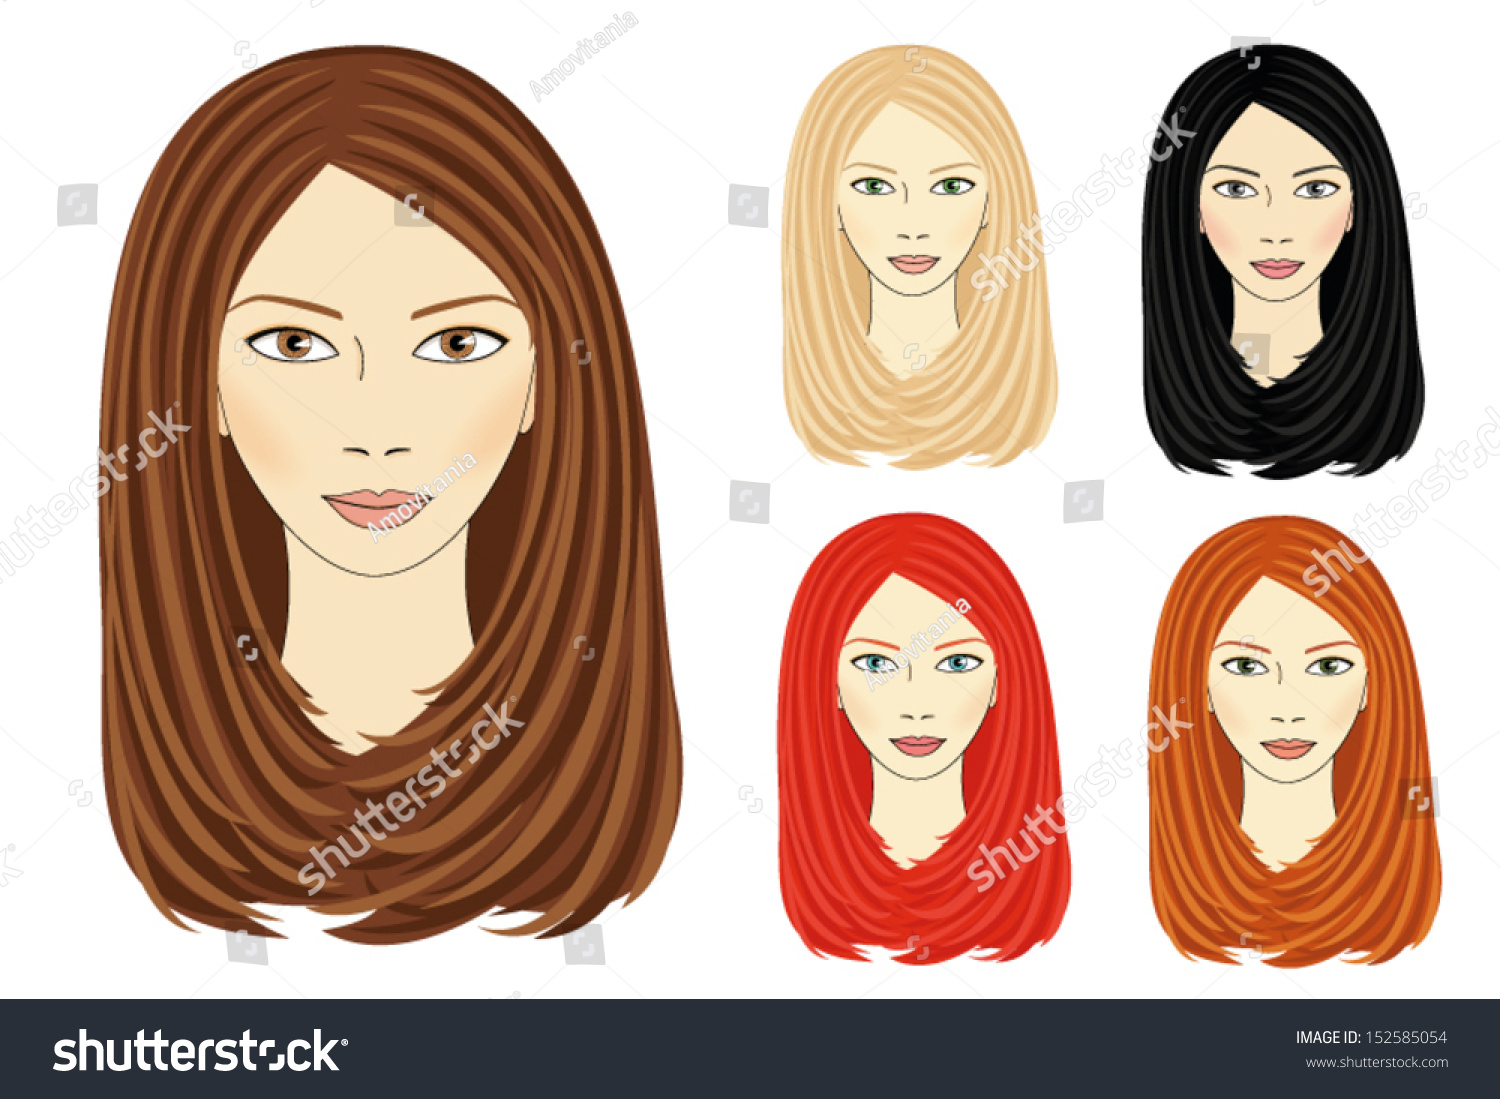 Set Images Same Girl Based On Stock Vector Royalty Free 152585054